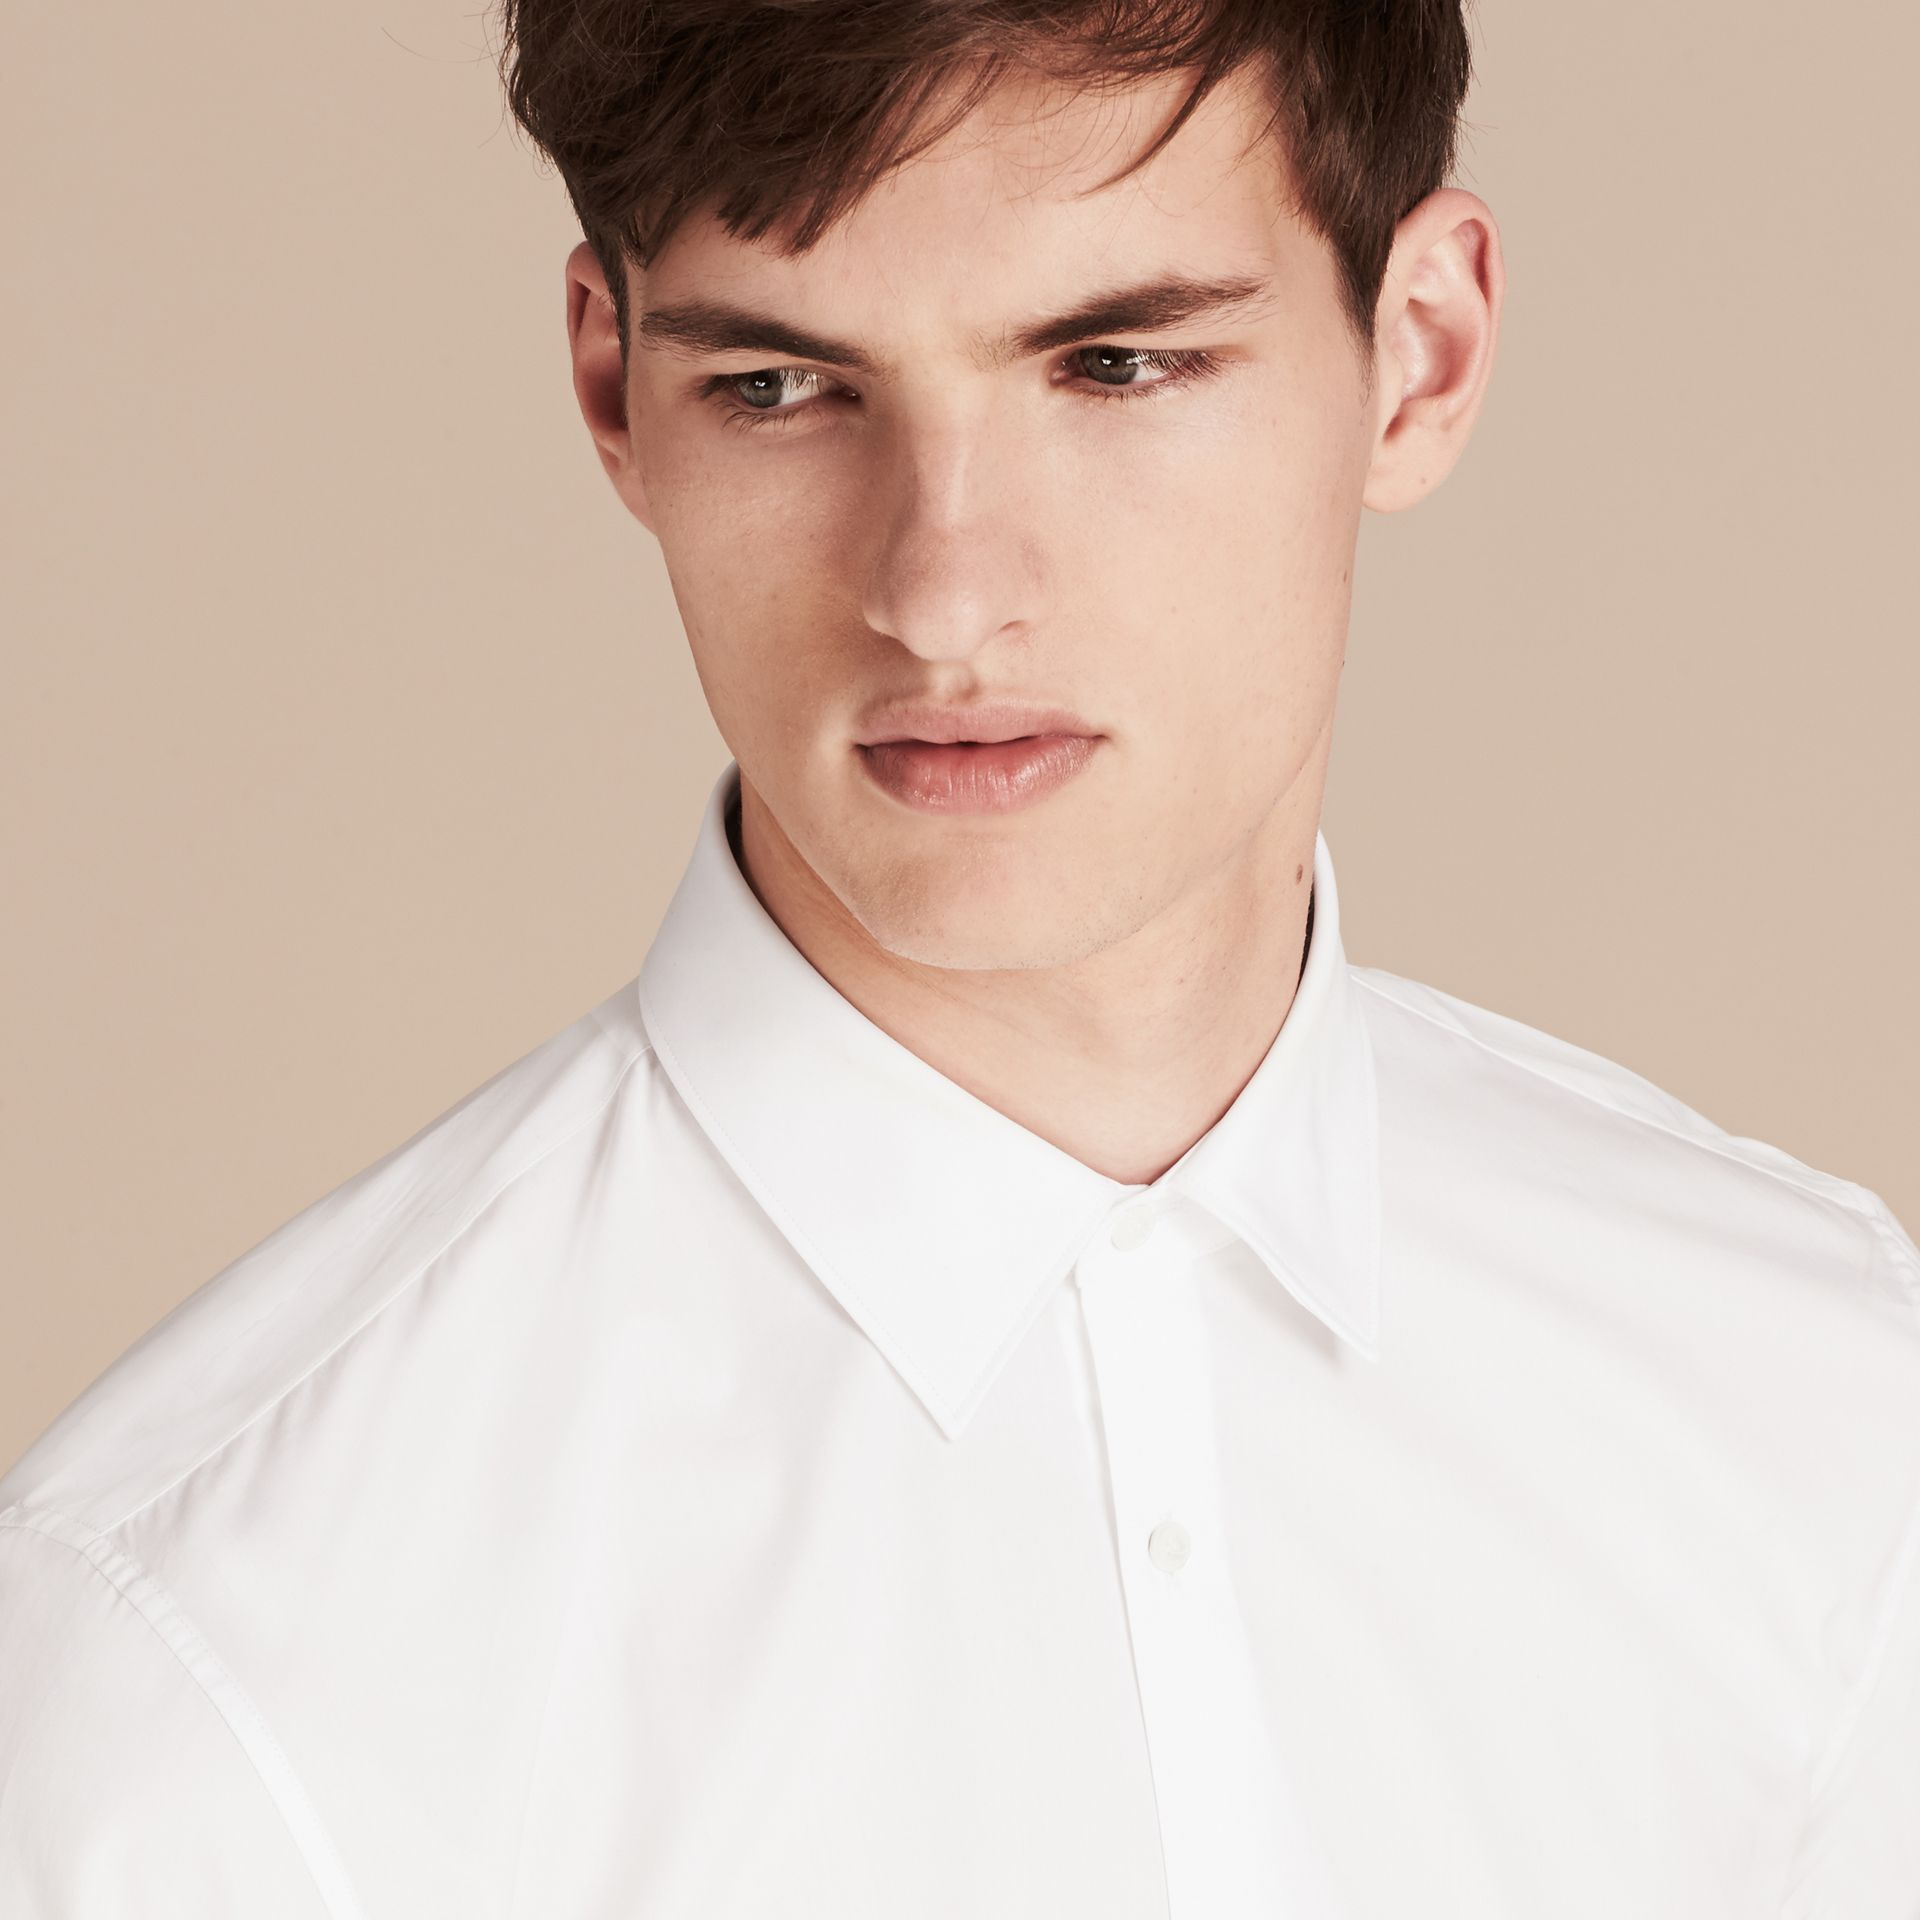 Modern Fit Cotton Poplin Shirt in White - Men | Burberry United States - gallery image 5